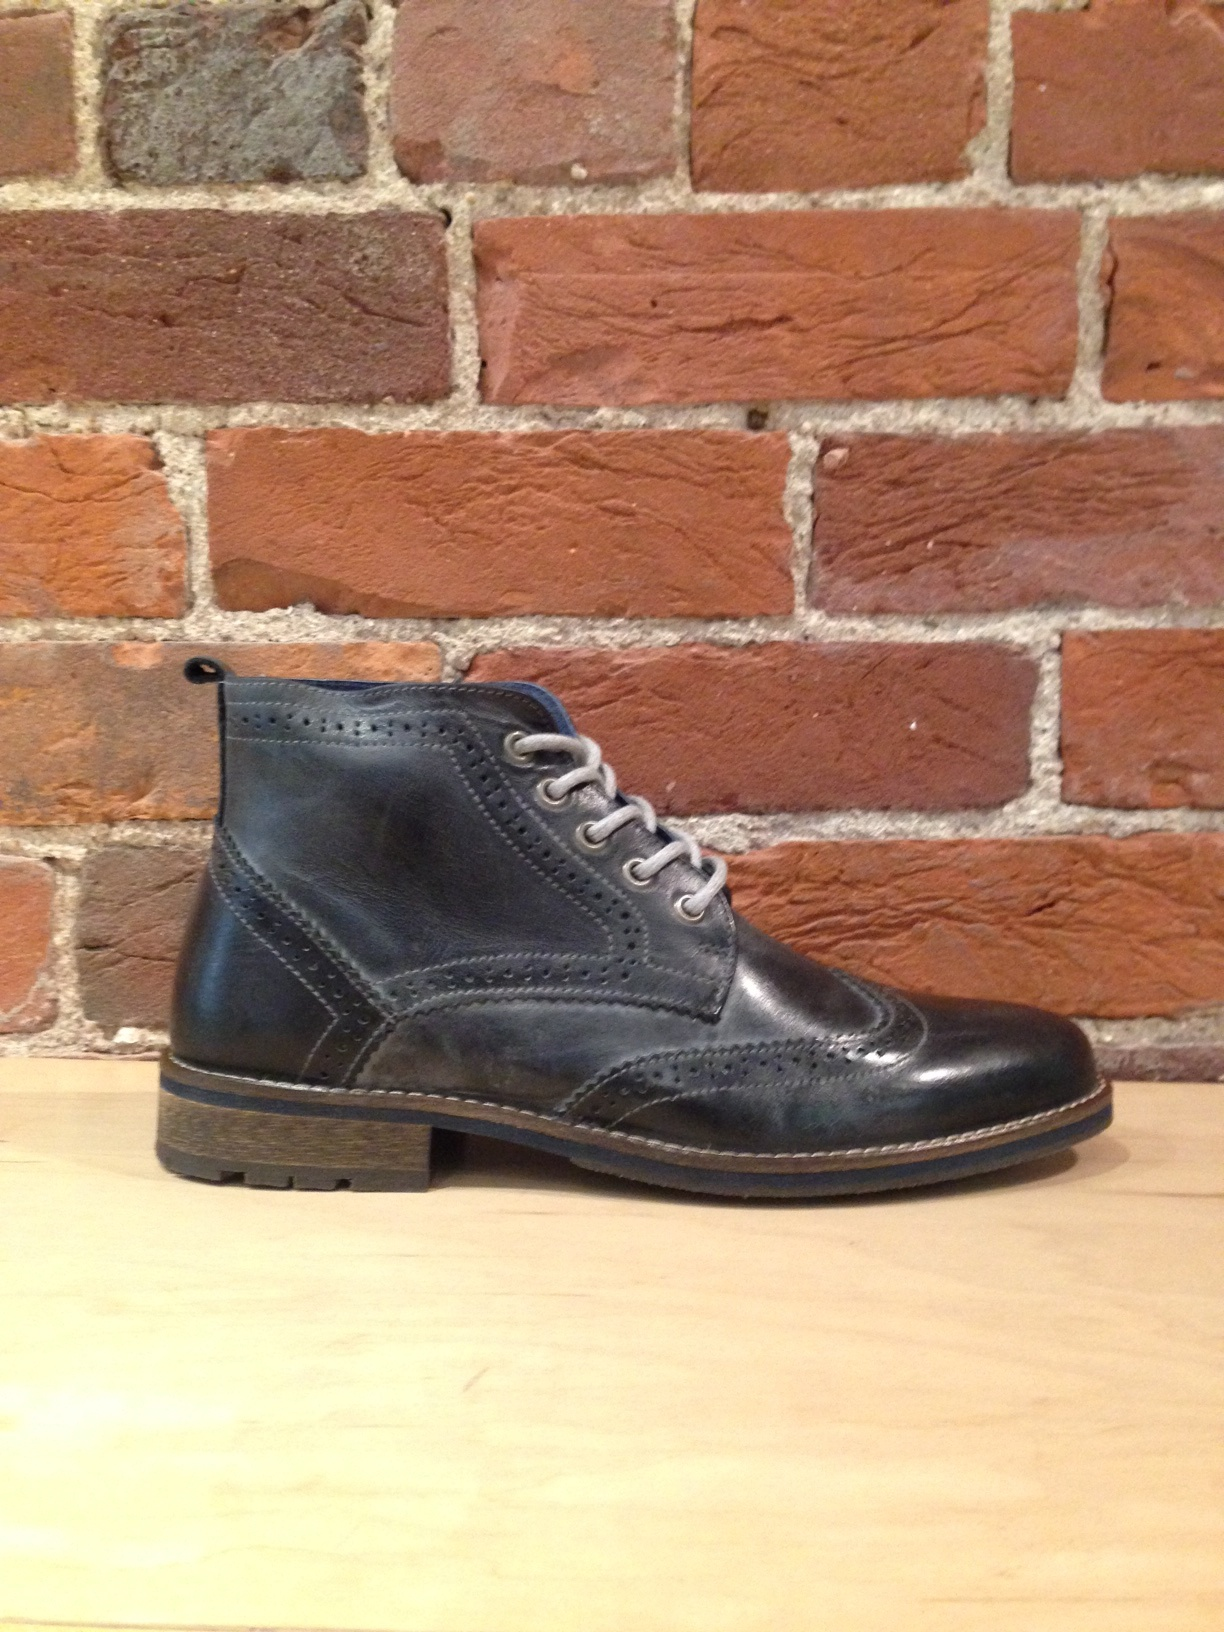 PARC CITY BOOT CO. - BIG BEND BOOT IN BLACK WASHED LEATHER